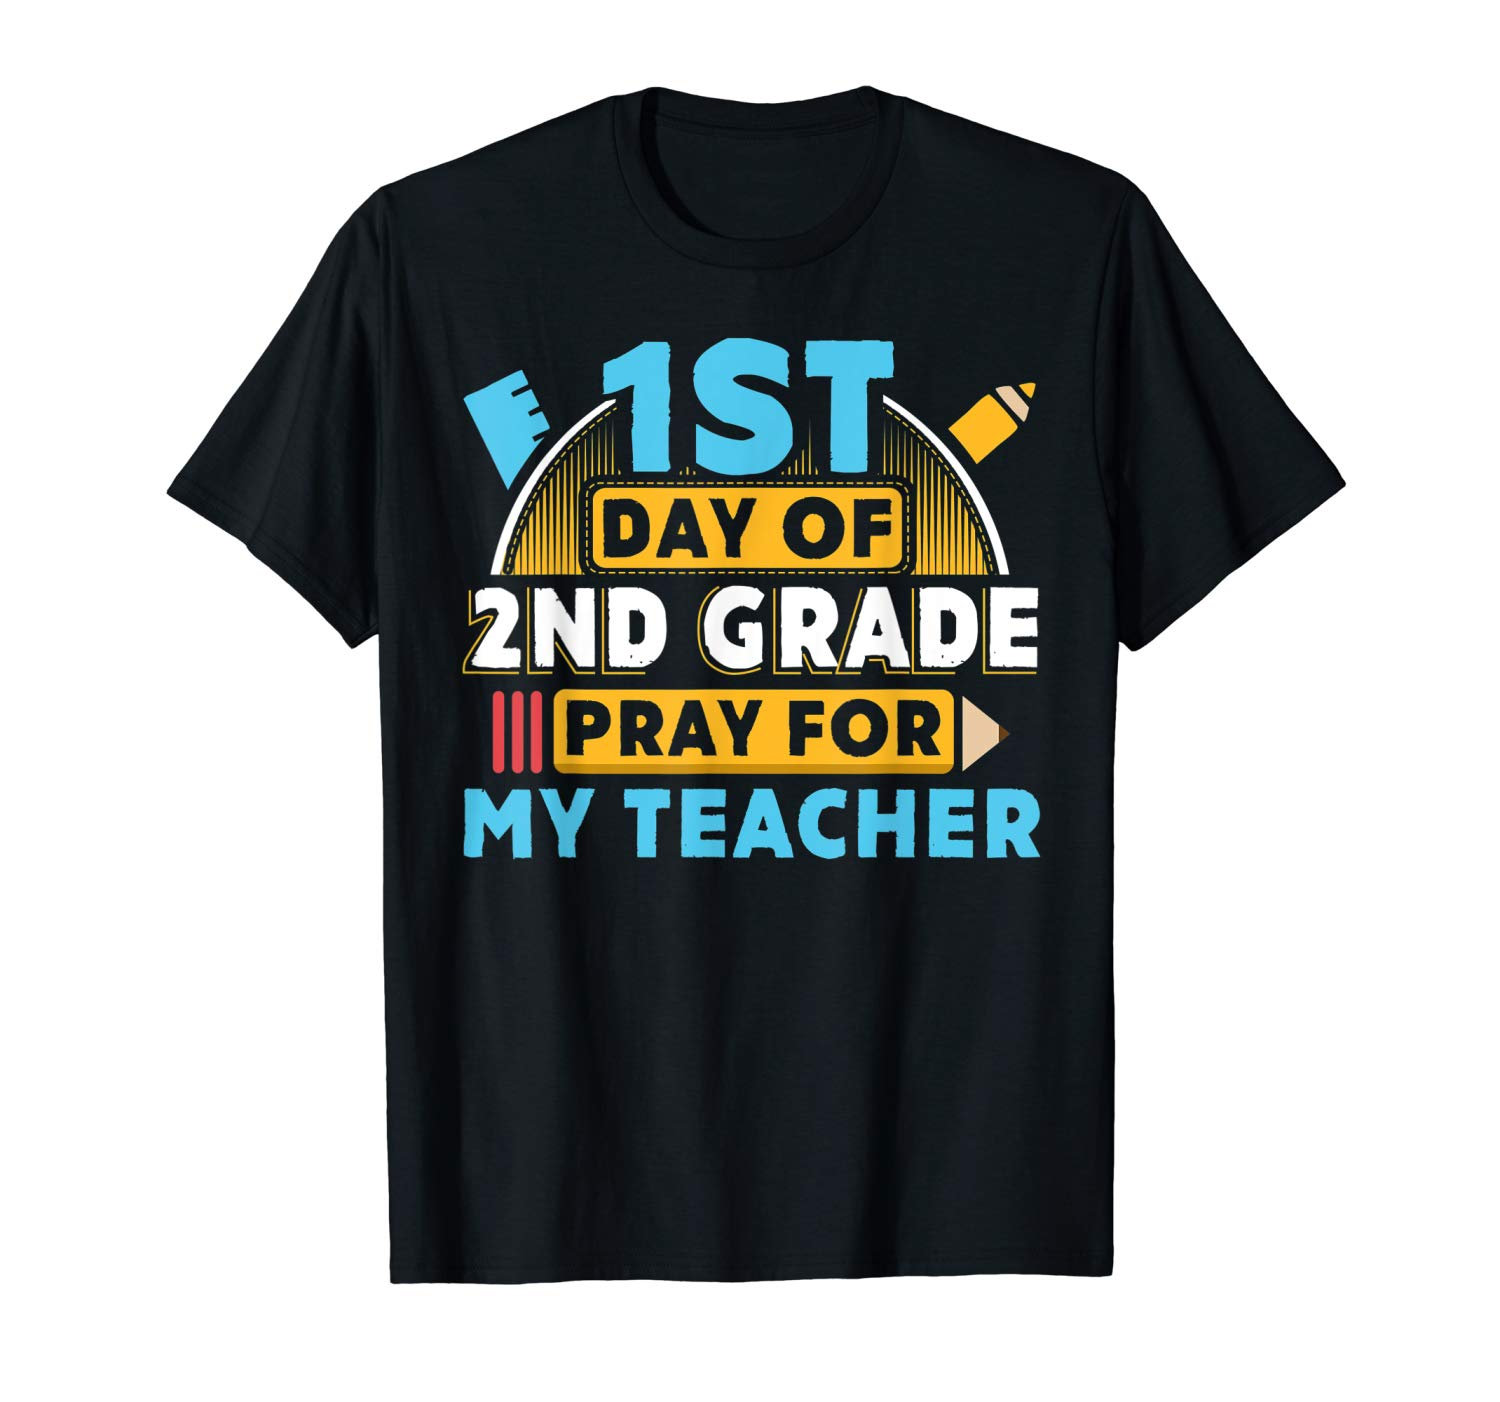 First Day Of 2nd Grade Pray For My Tea Back To School T Shirt